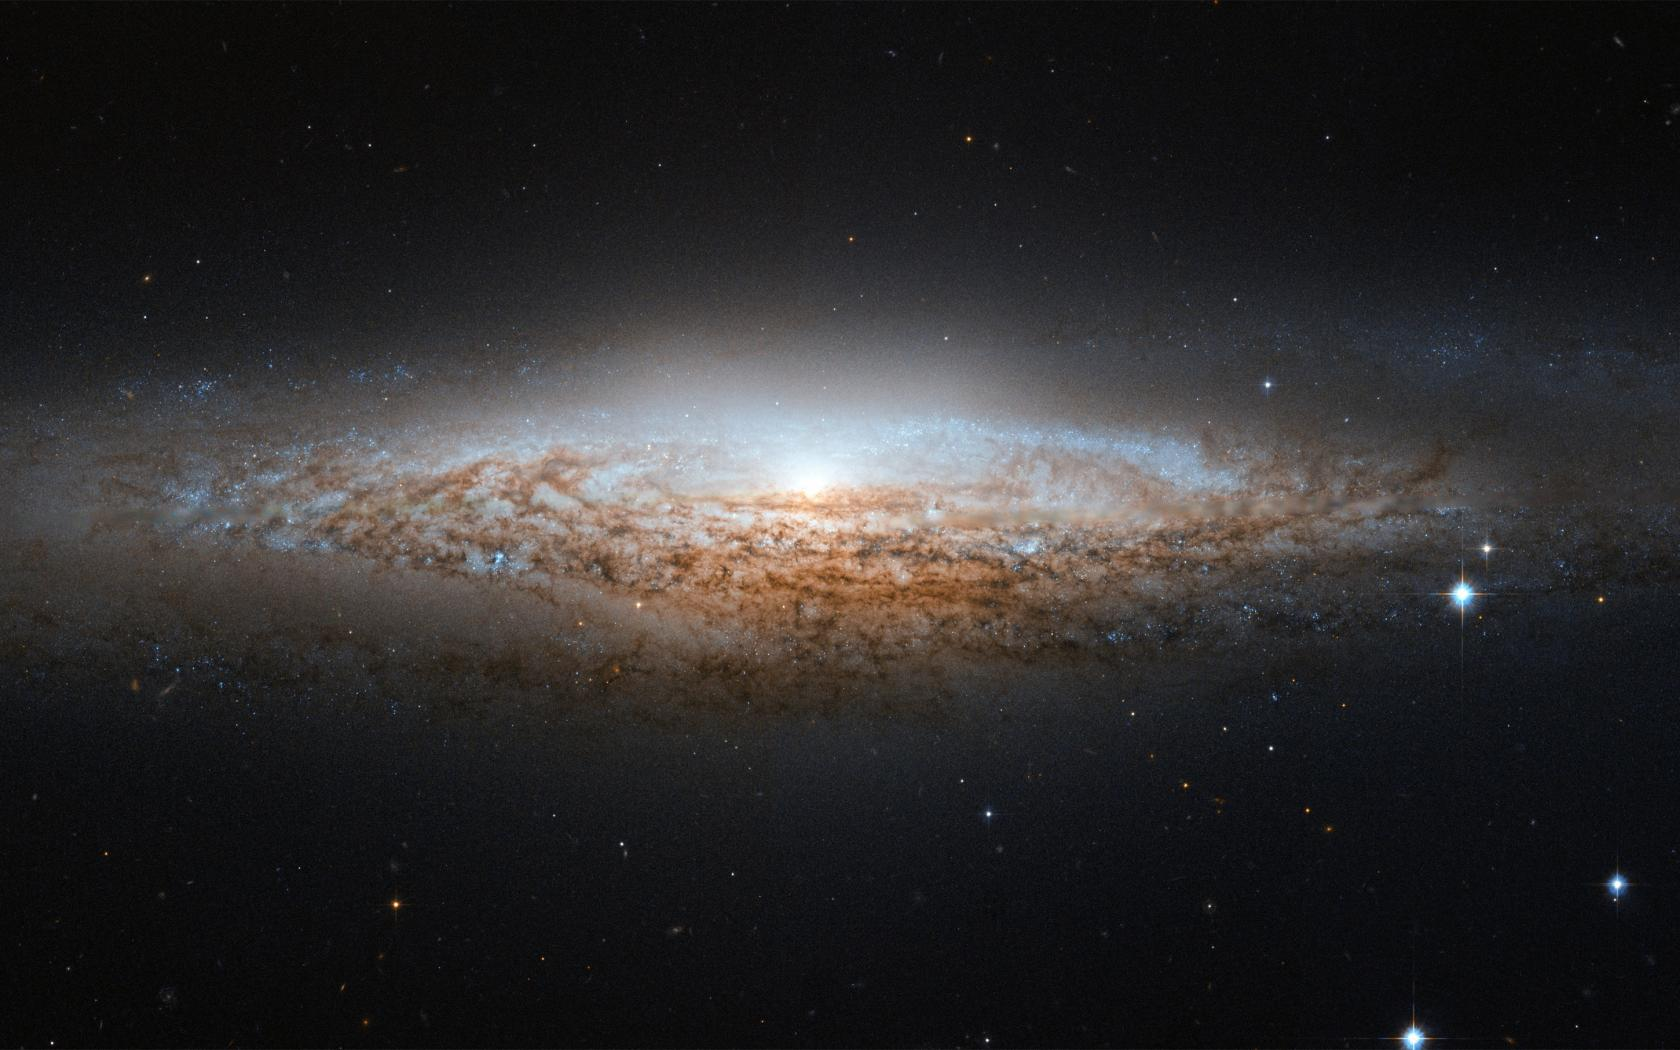 Galaxies galaxy ngc 2683 outer space spiral wallpaper.